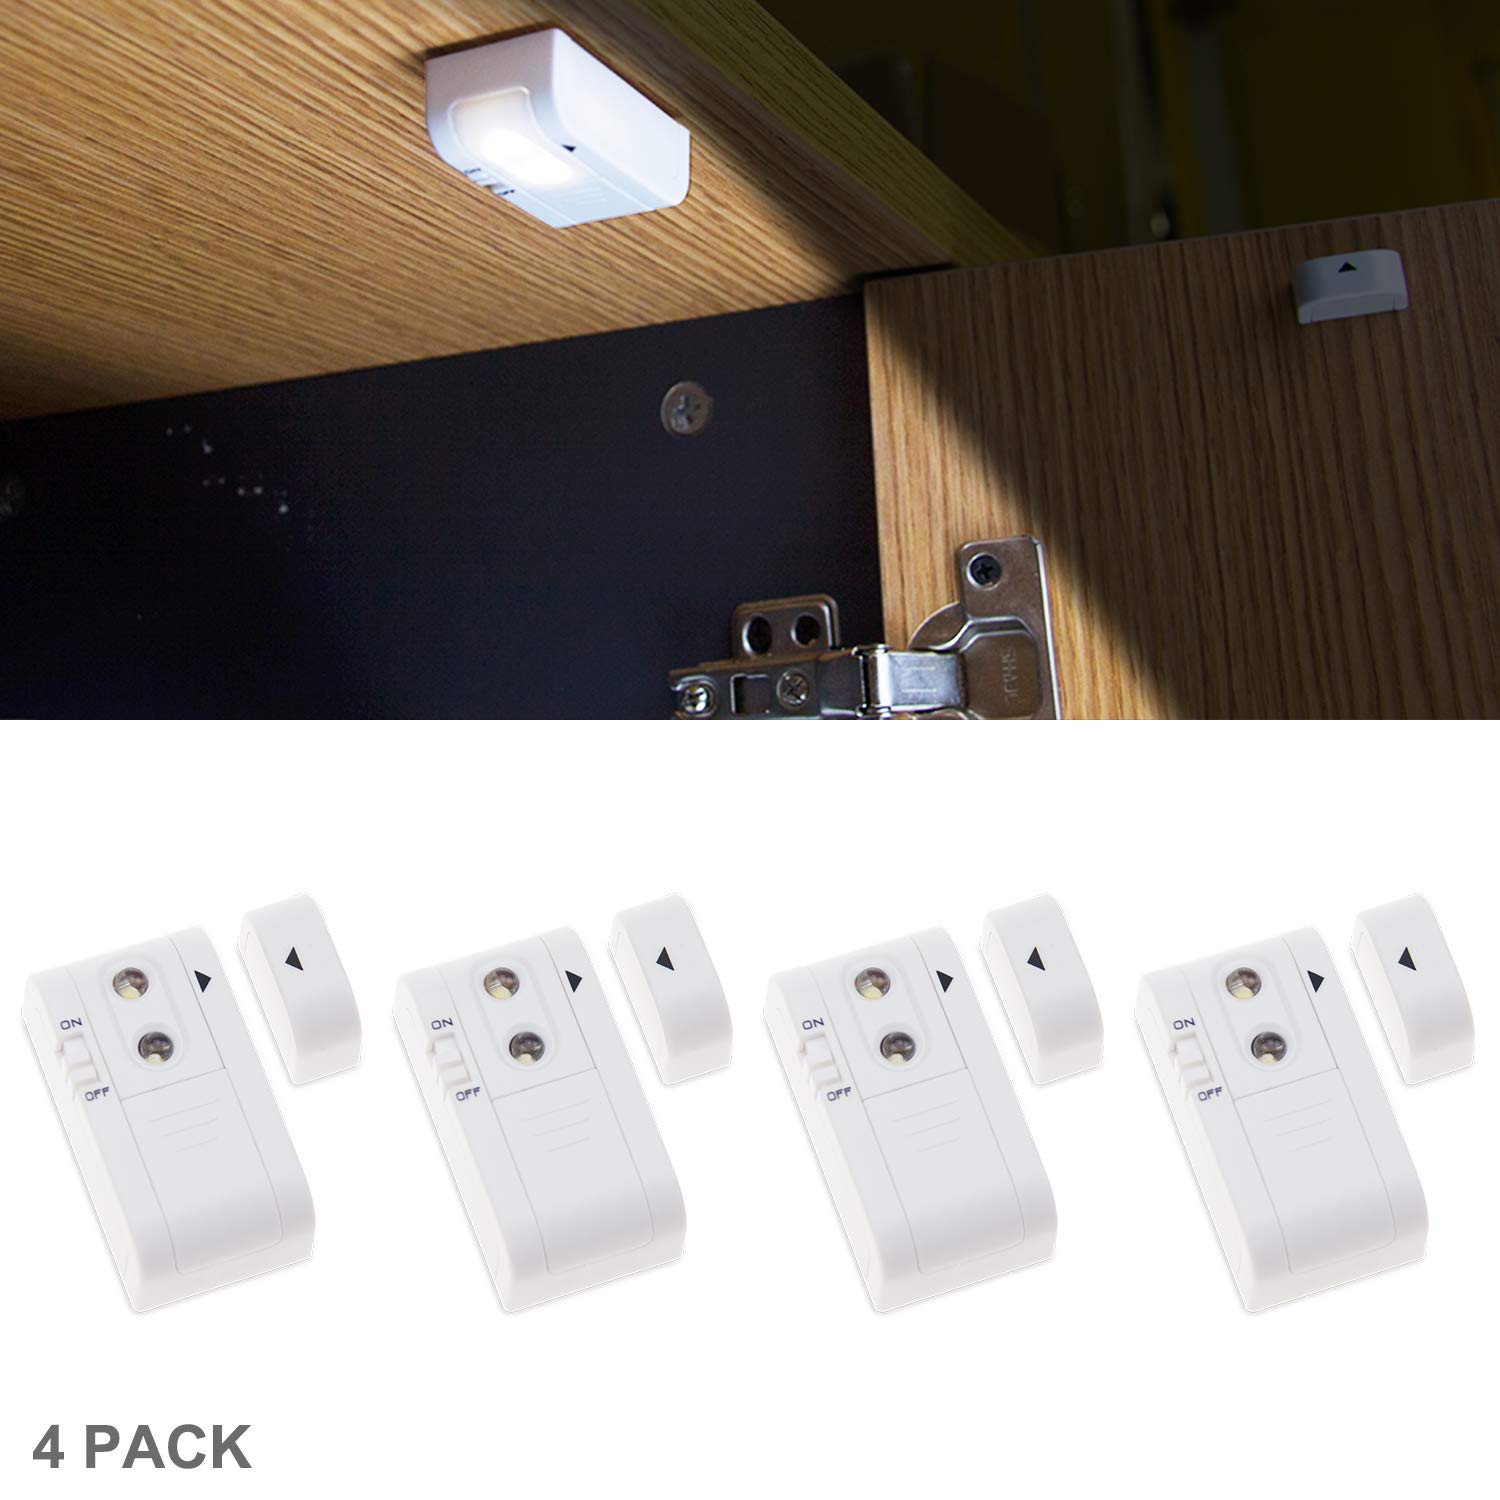 HONWELL Mini Closet Lights Puck Lights Bright Wireless Battery LED Lights, Stick on Light, Under Cabinet Kitchen Counter Drawer Wardrobe Bedside Table Office Lighting-4 Pack